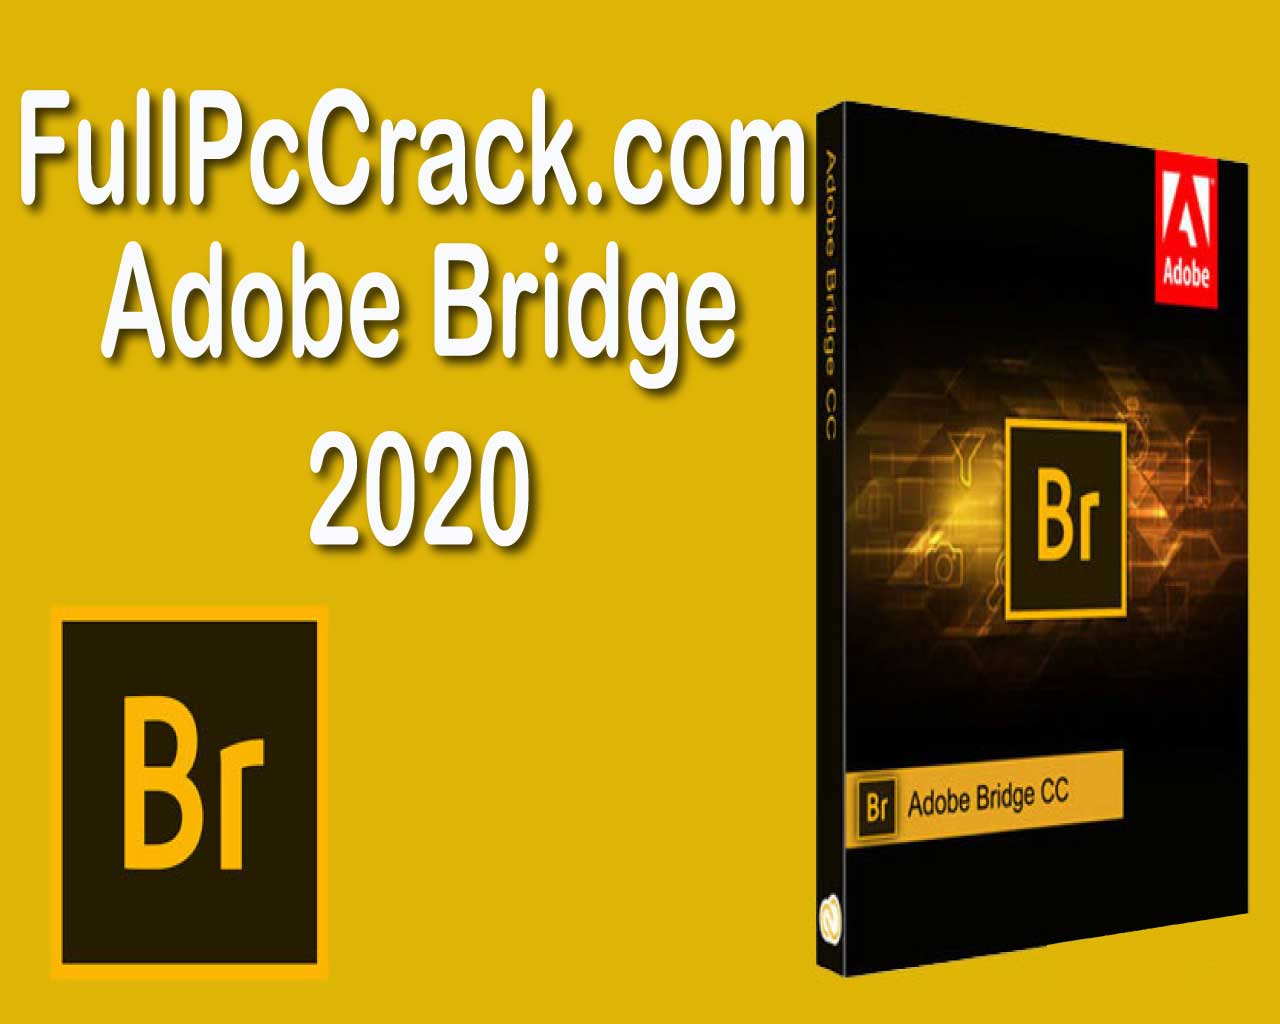 adobe-bridge-edit-1.jpg